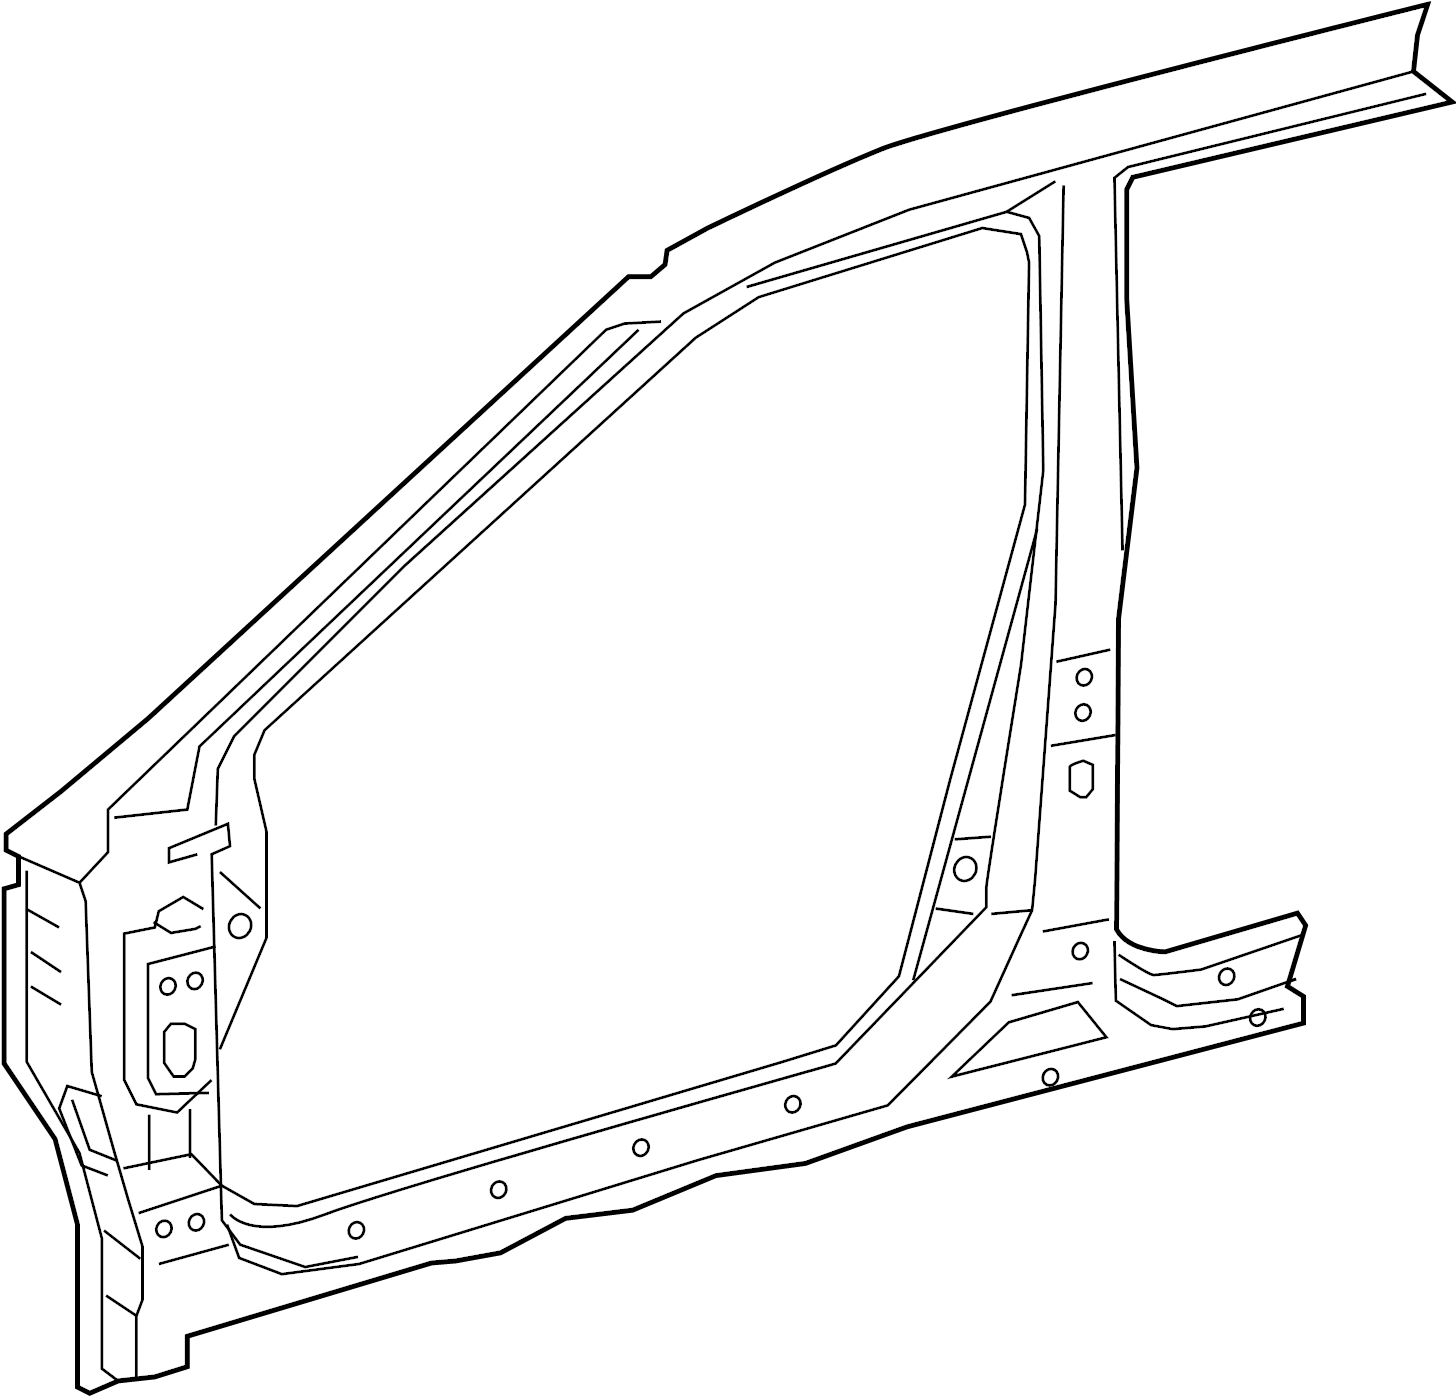 Nissan Maxima Uniside Right Front Body Panel